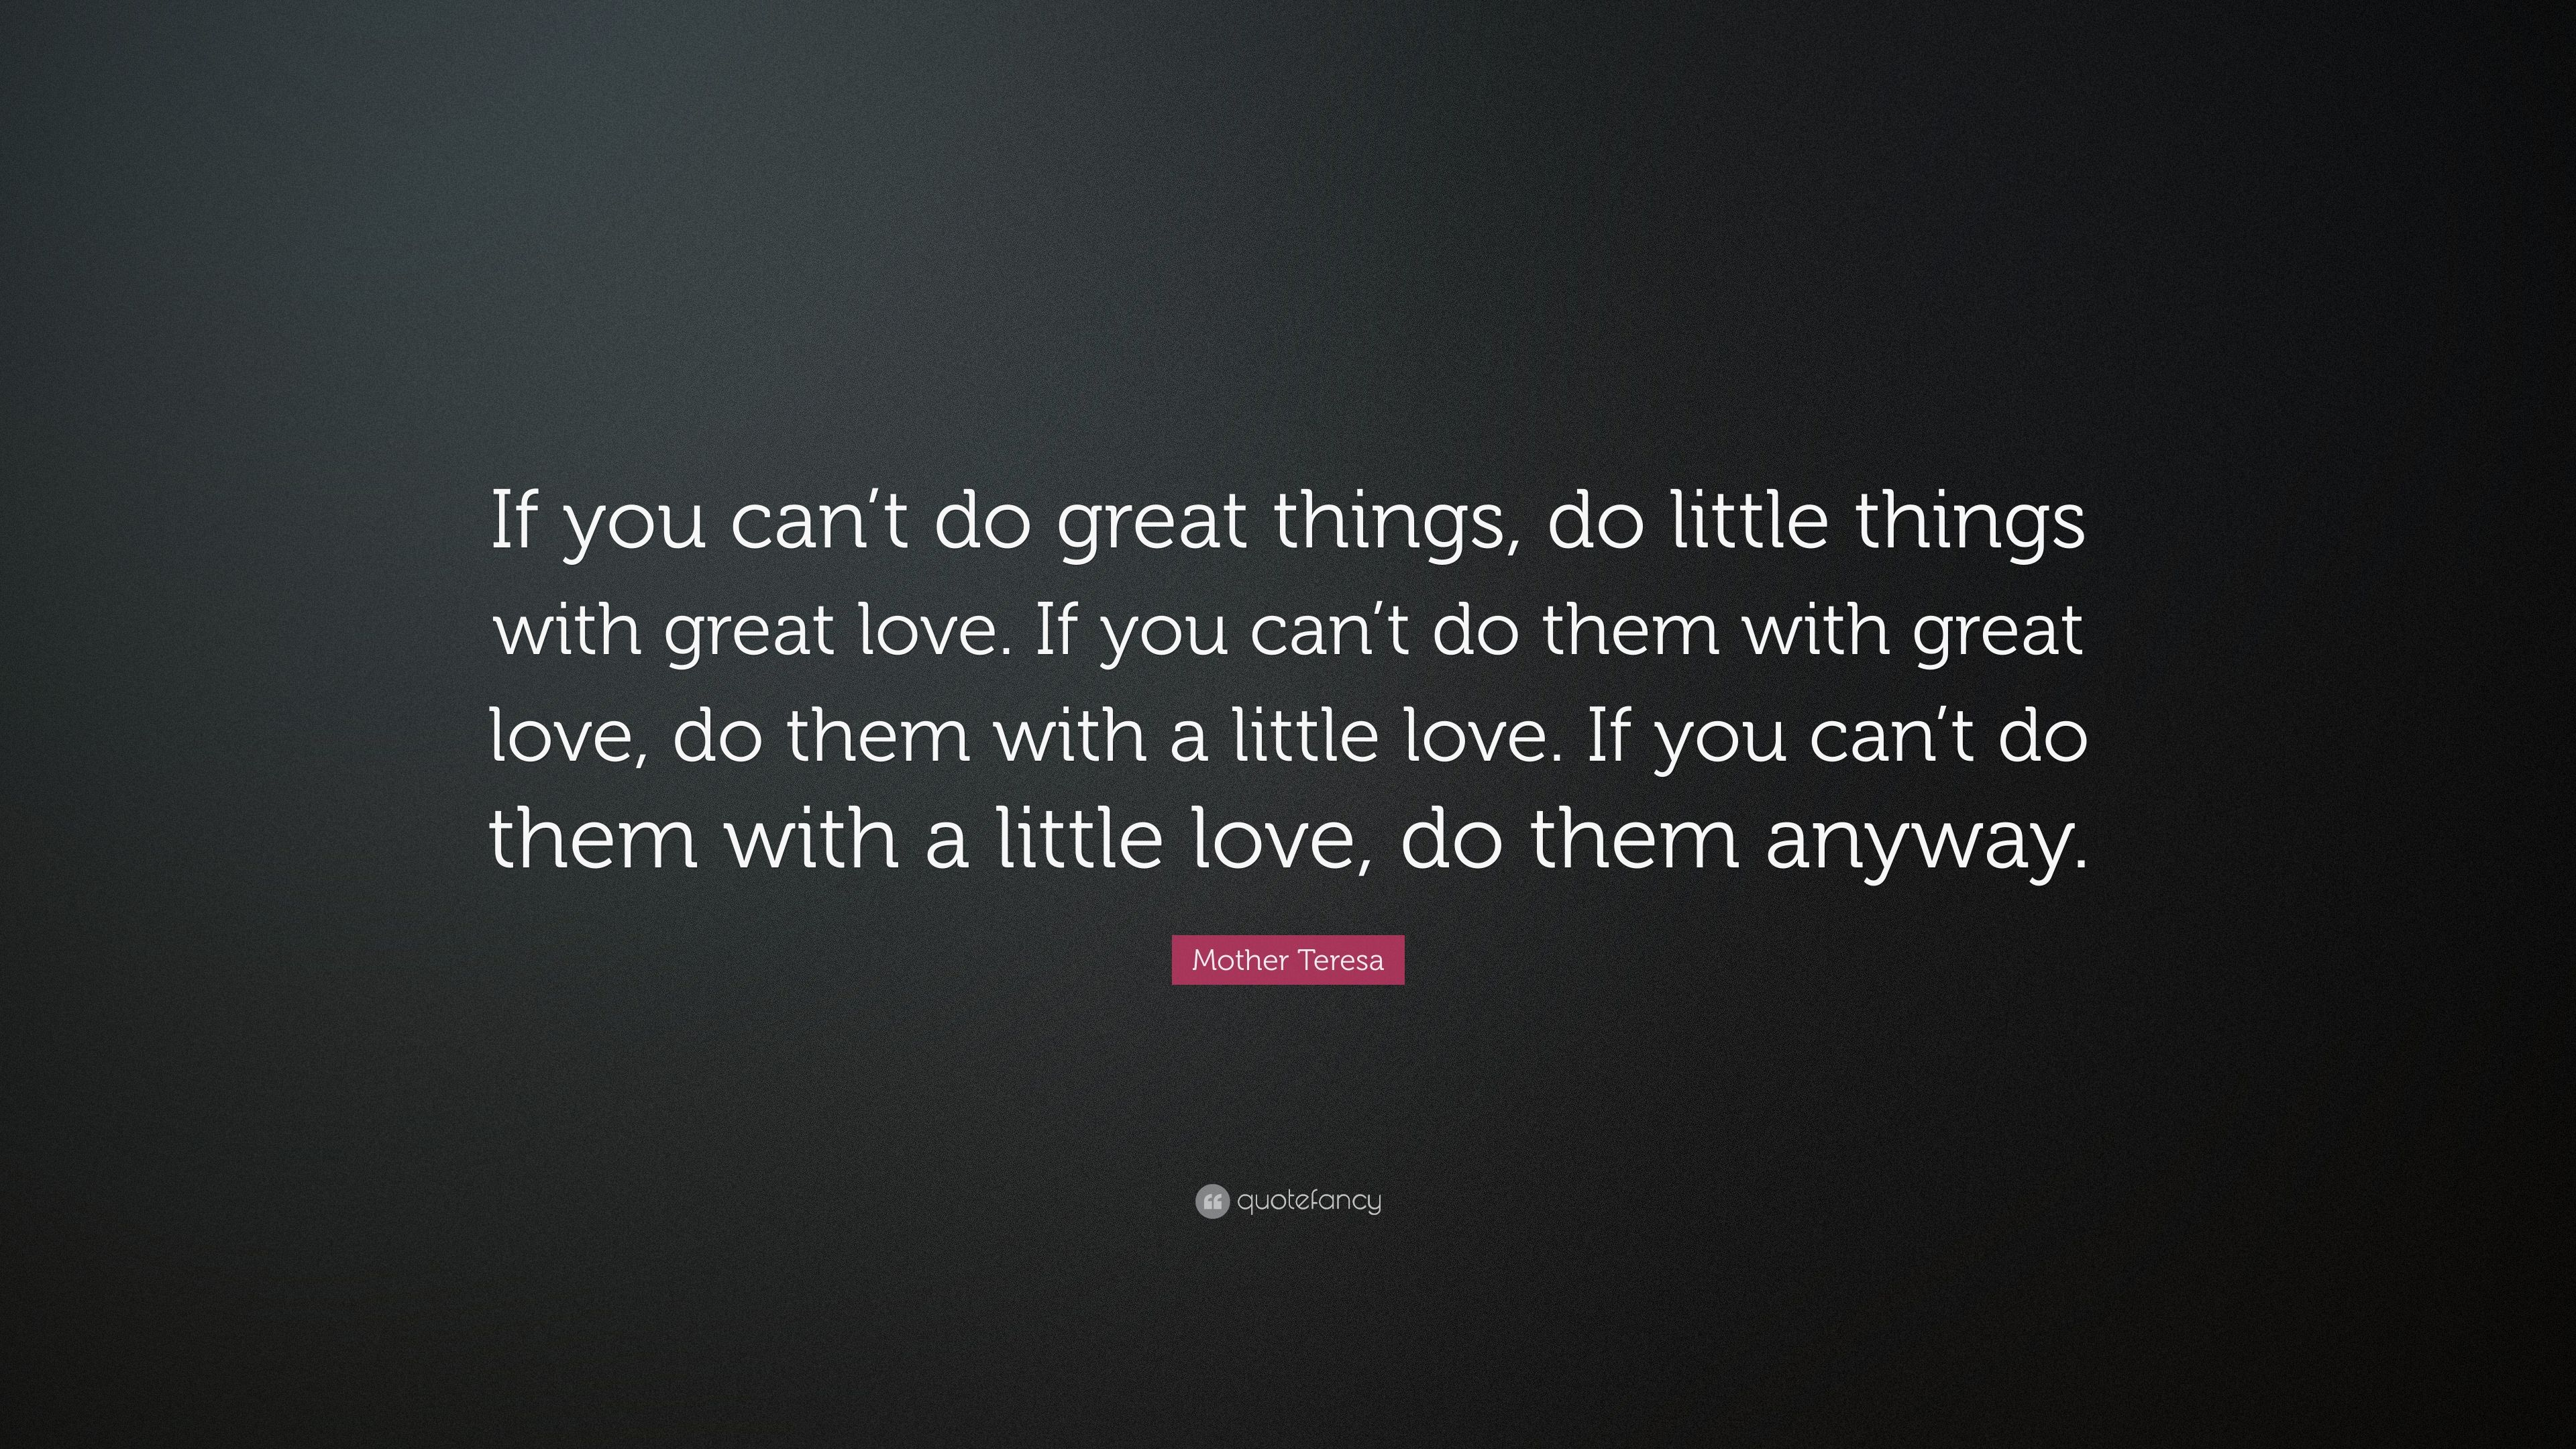 Mother Teresa Quote: U201cIf You Canu0027t Do Great Things, Do Little